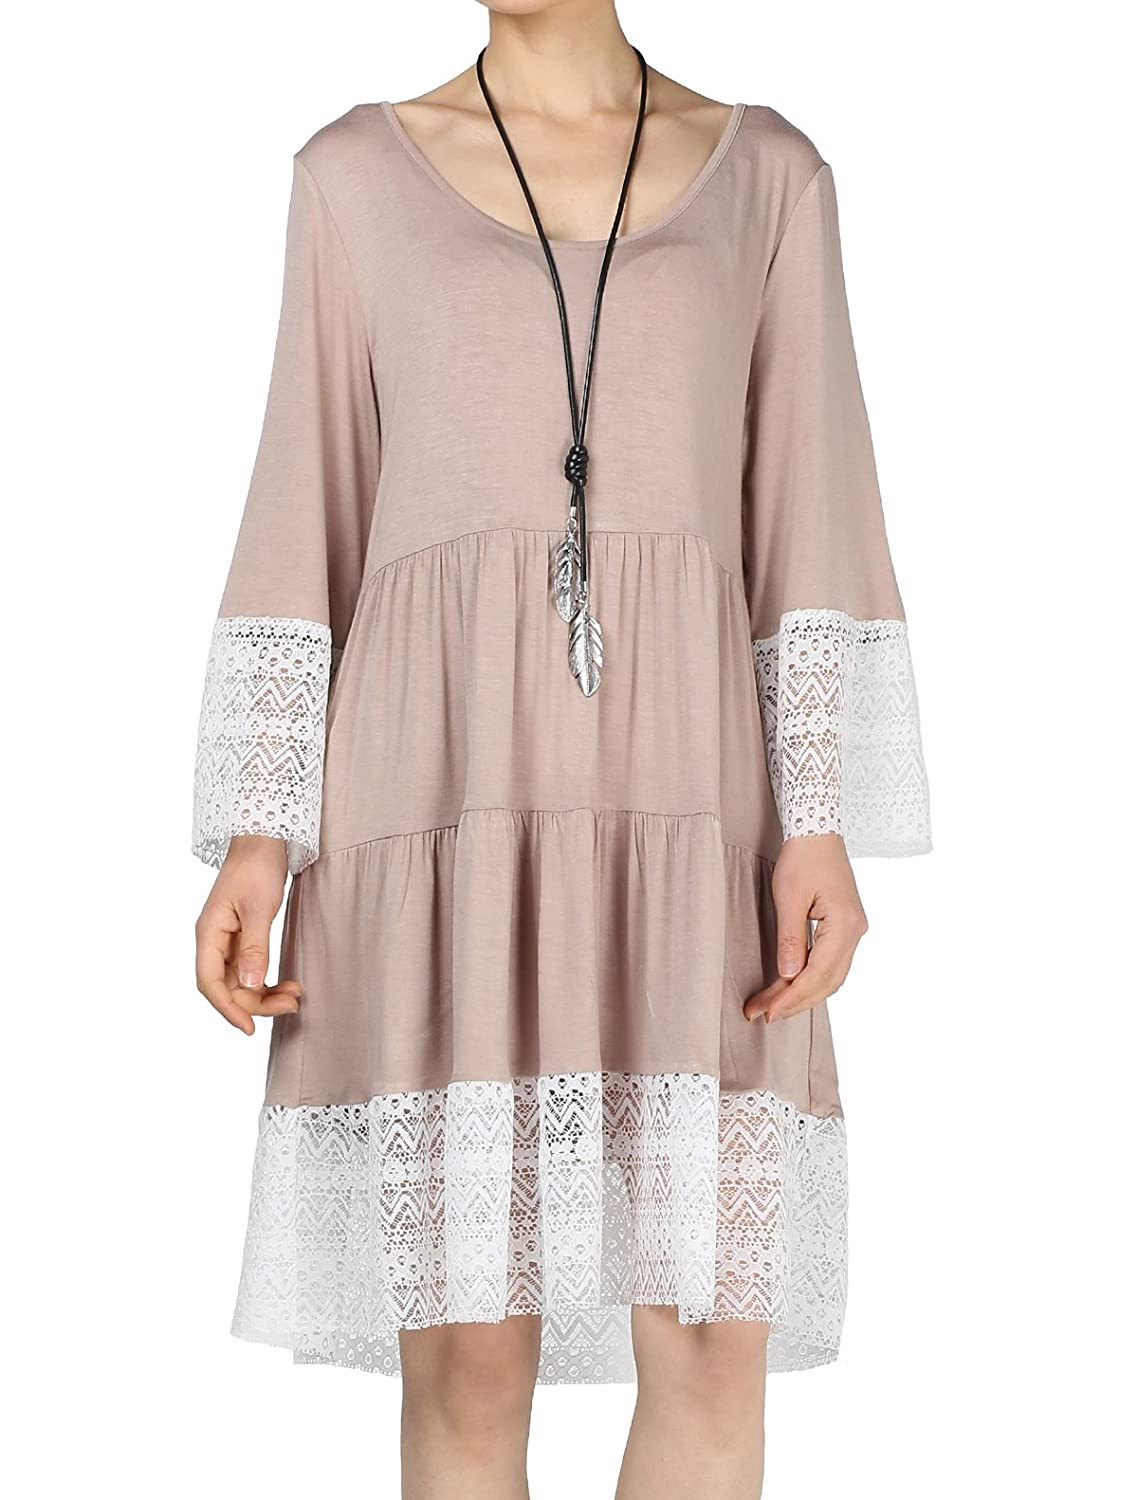 Mordenmiss Women's Flared Tunics Dress Lace Trim Boho Shirts with Side Pockets